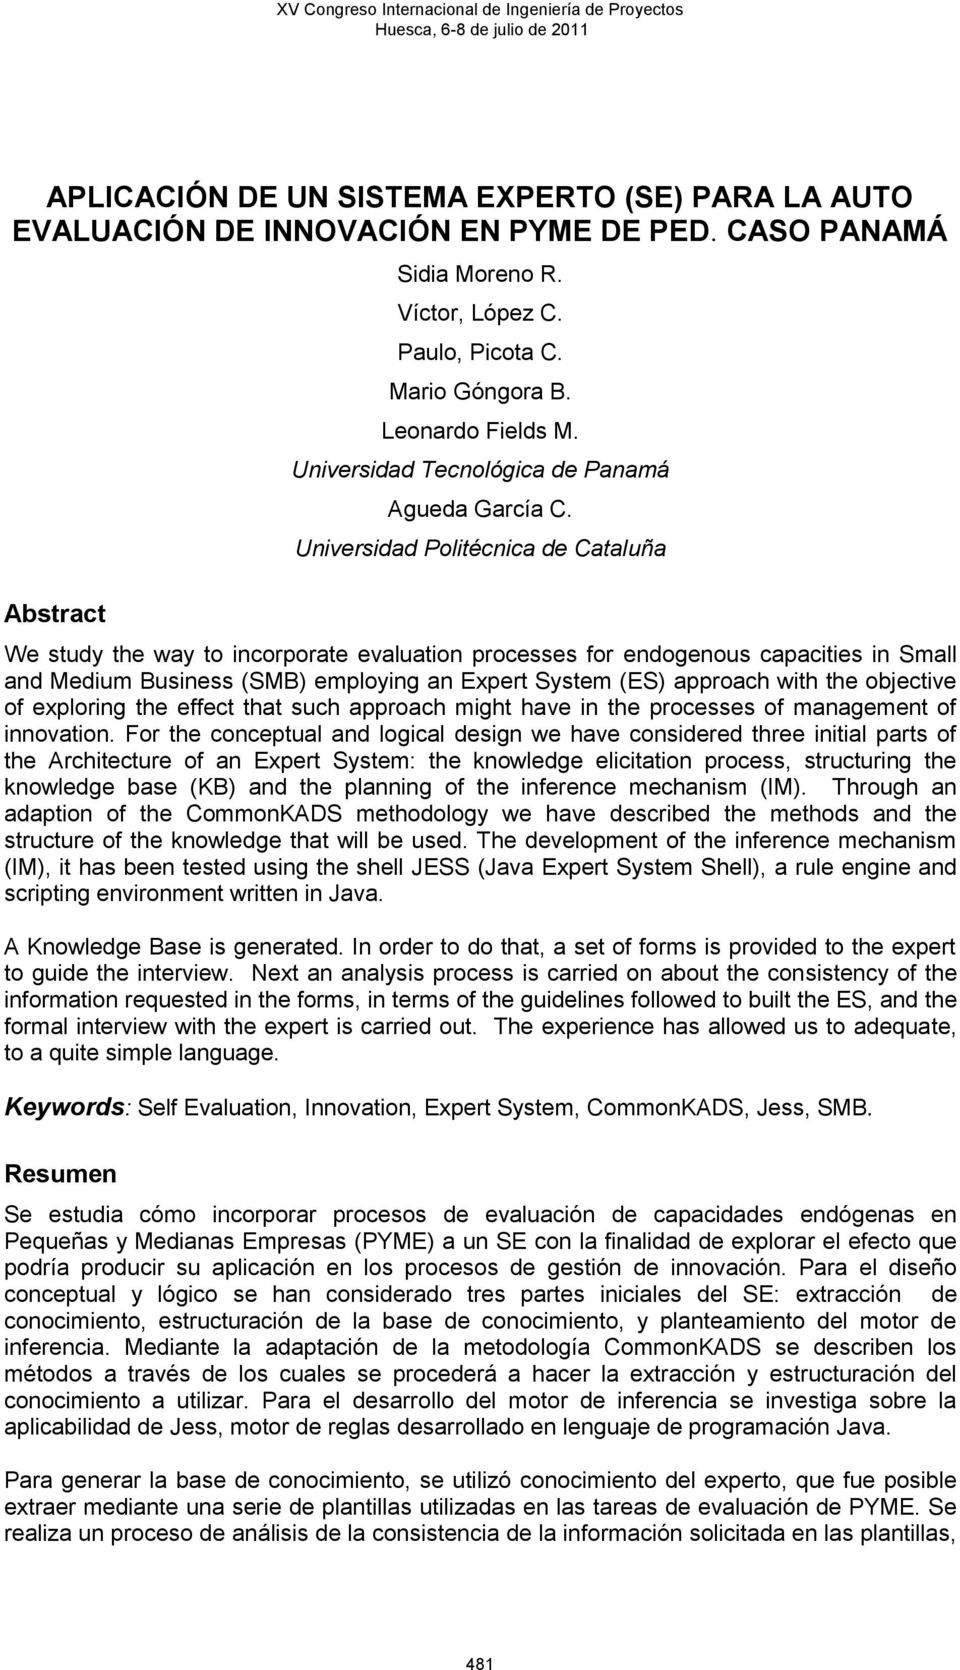 Universidad Politécnica de Cataluña We study the way to incorporate evaluation processes for endogenous capacities in Small and Medium Business (SMB) employing an Expert System (ES) approach with the